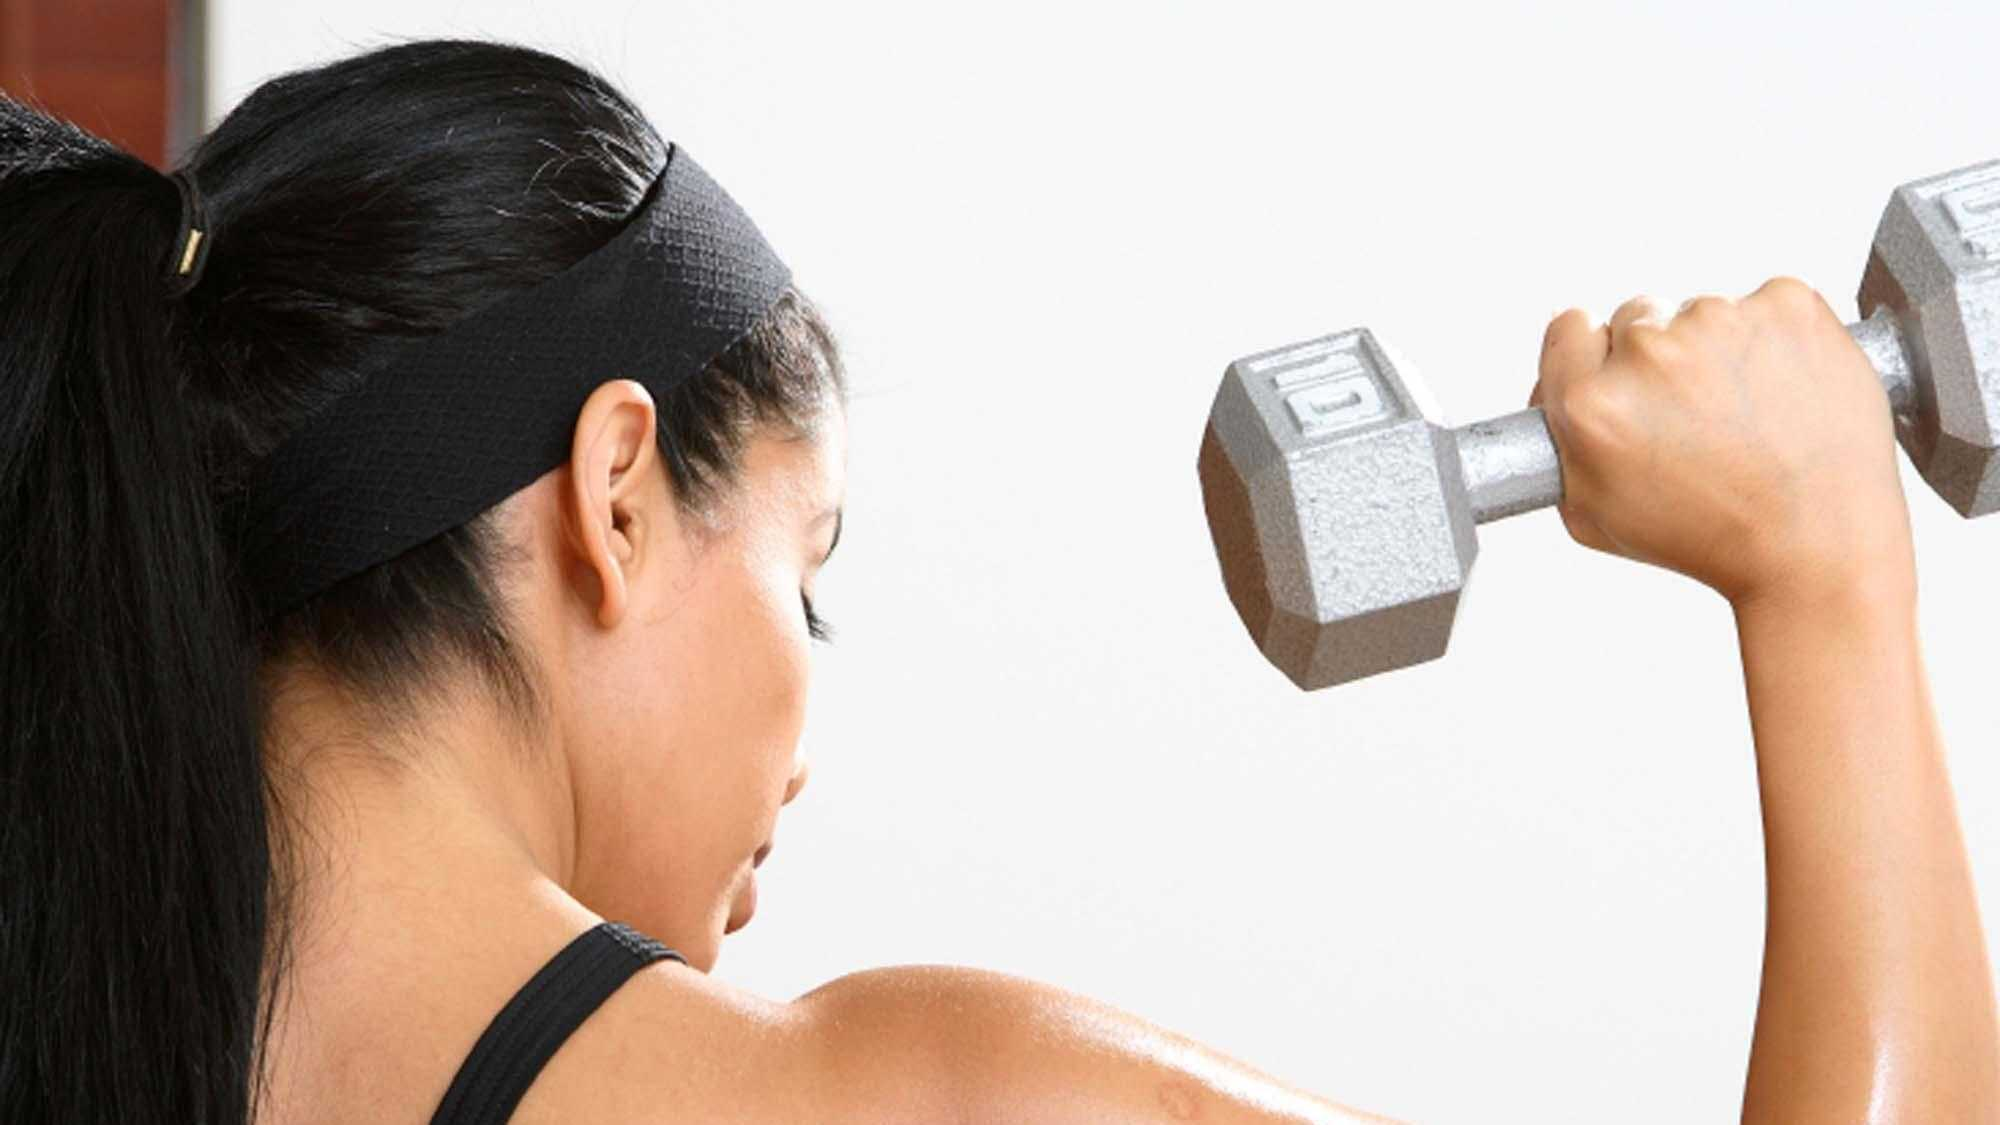 Women exercise, fitness, weight, dumbbell, gym